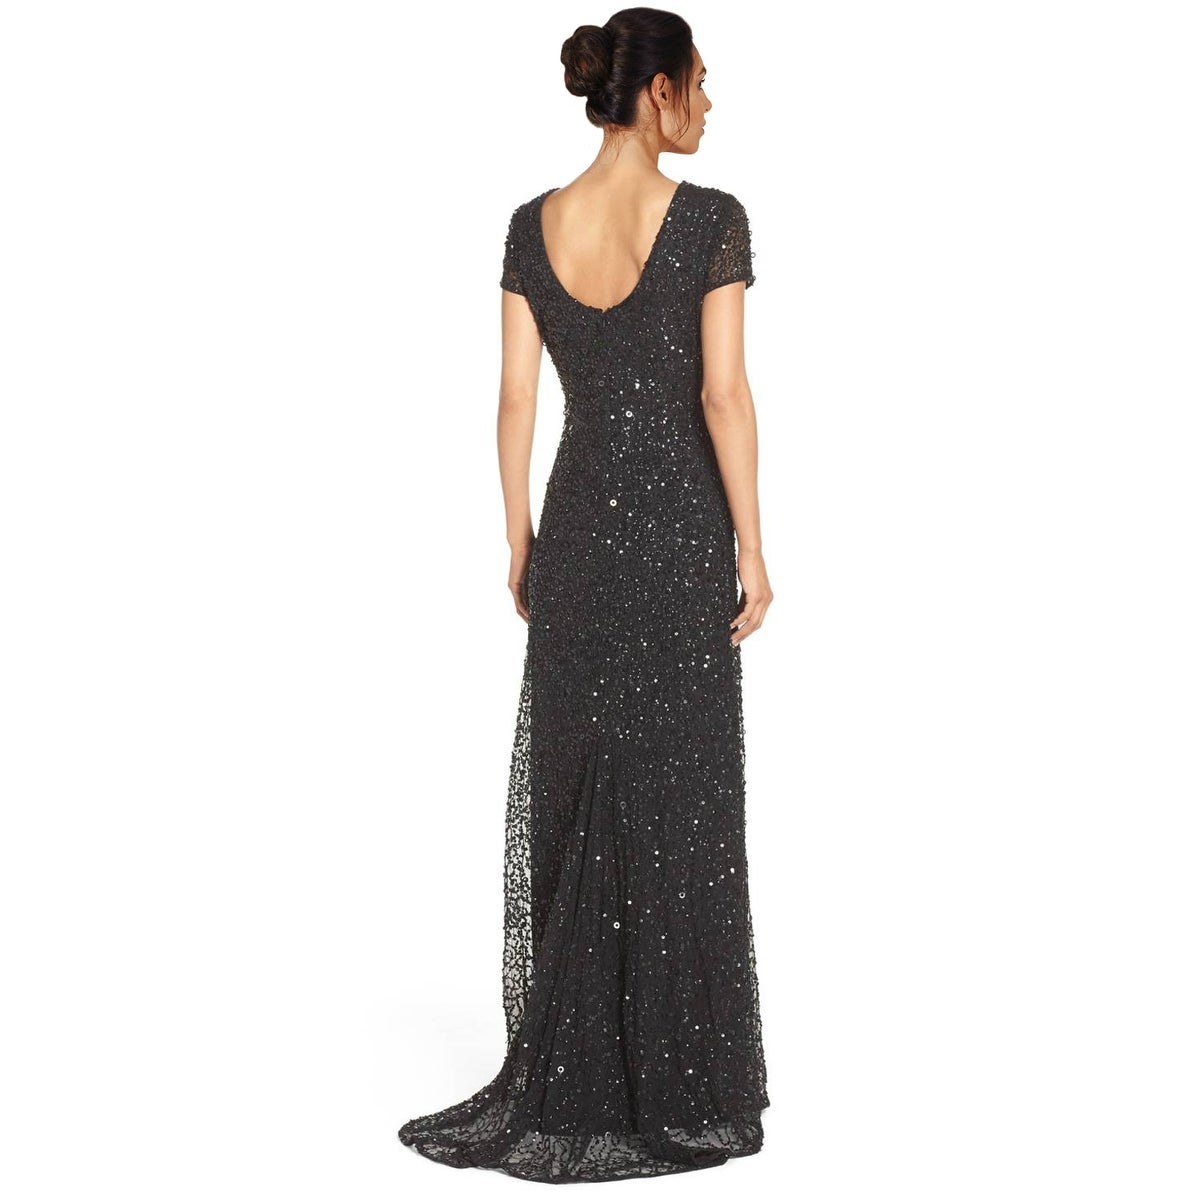 08463b2b5cb47 Shop Adrianna Papell Petite Sequined Scoop Back Short Sleeve Evening Gown  Dress - 2p - Free Shipping Today - Overstock - 19839047